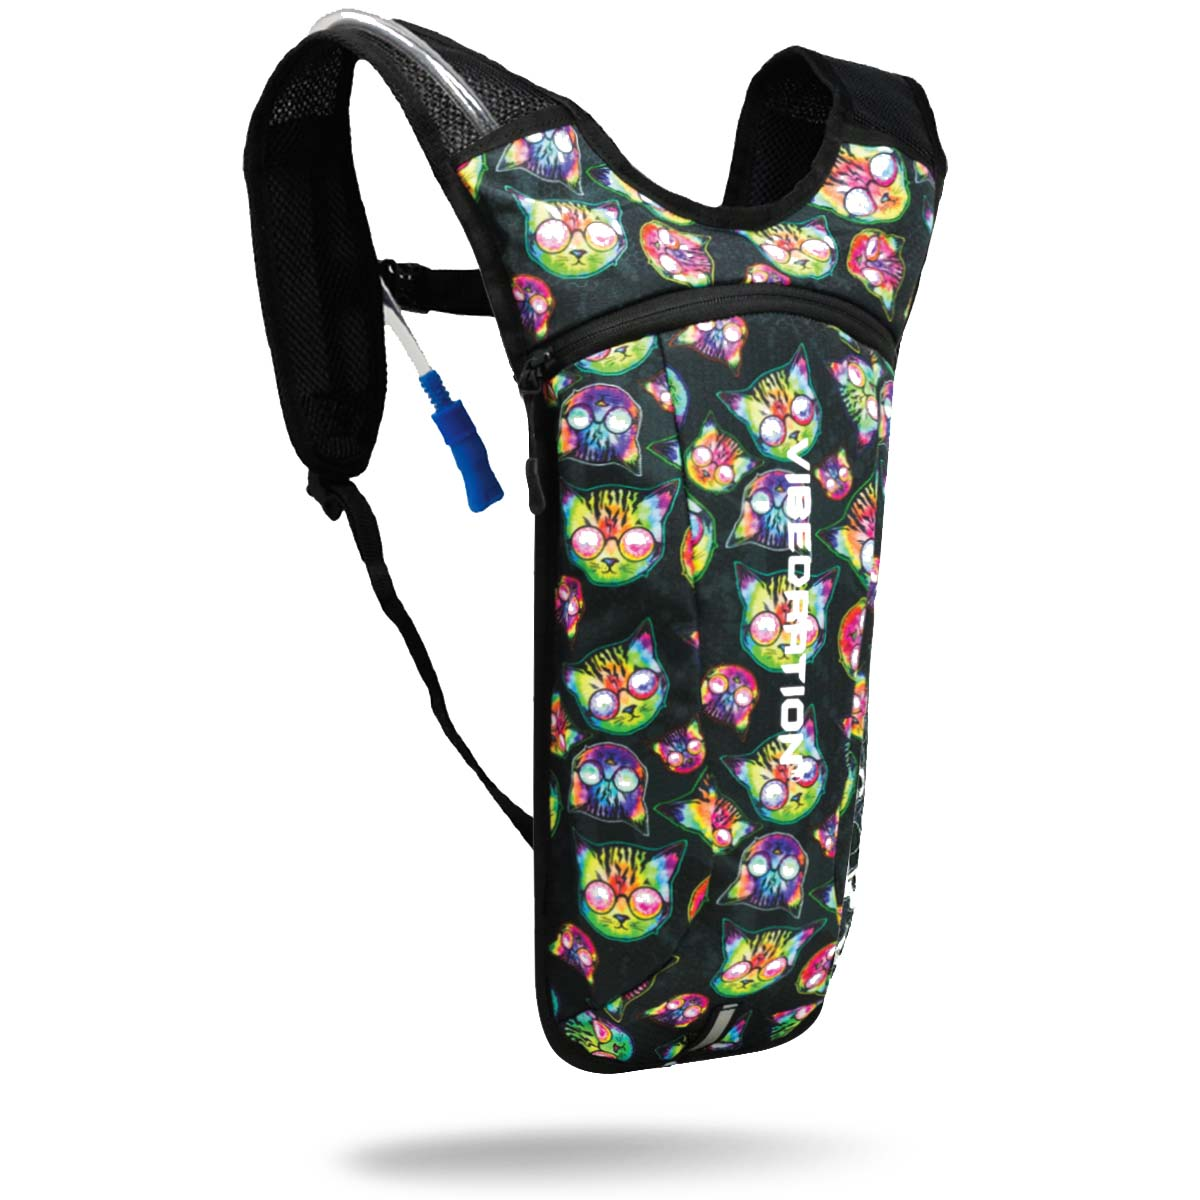 Kosmic Kitties 2 Liter Black Hydration Pack for Music Festivals and Raves